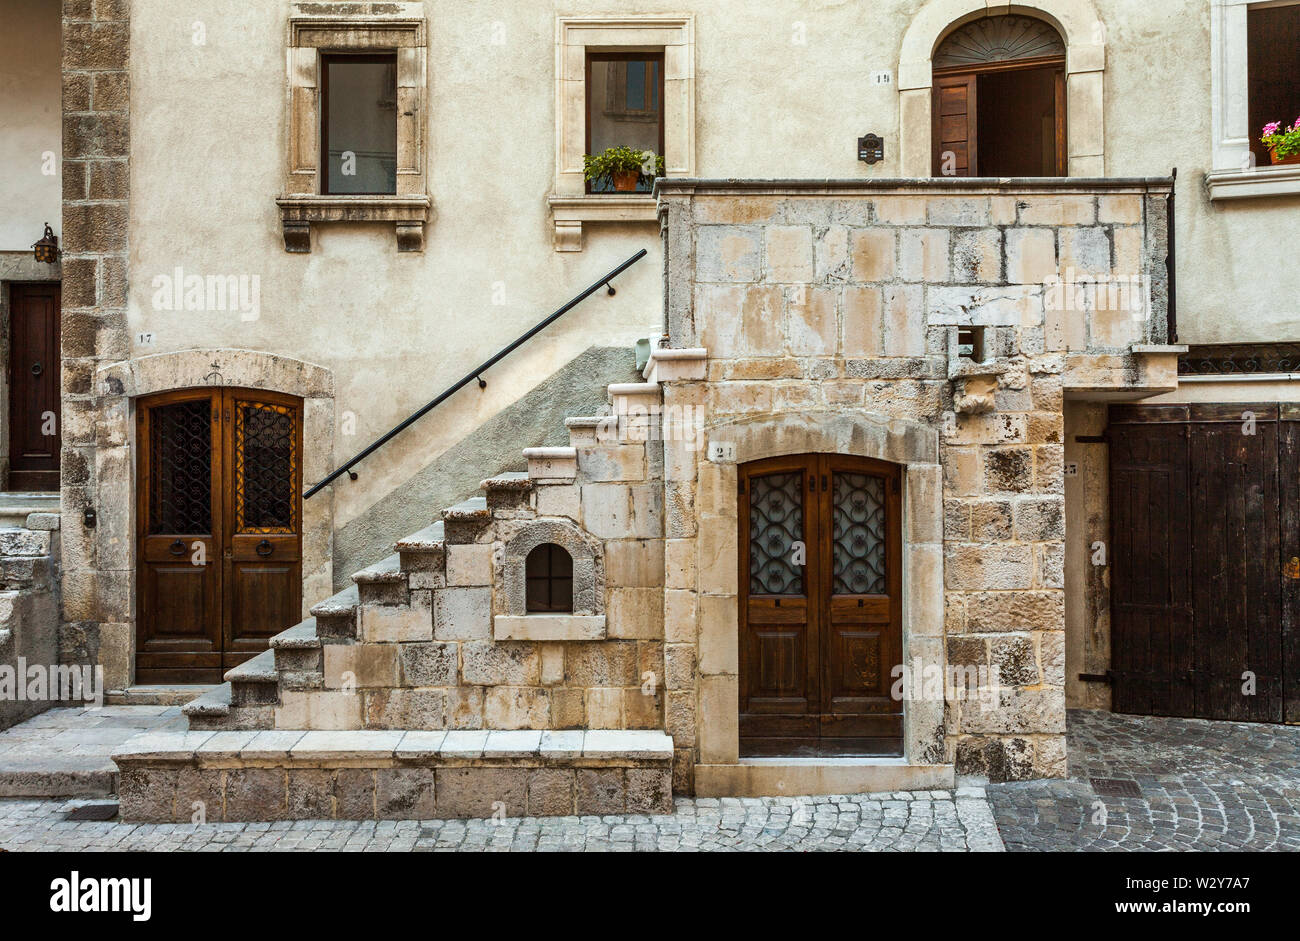 ancient architectures in Pescocostanzo - Stock Image